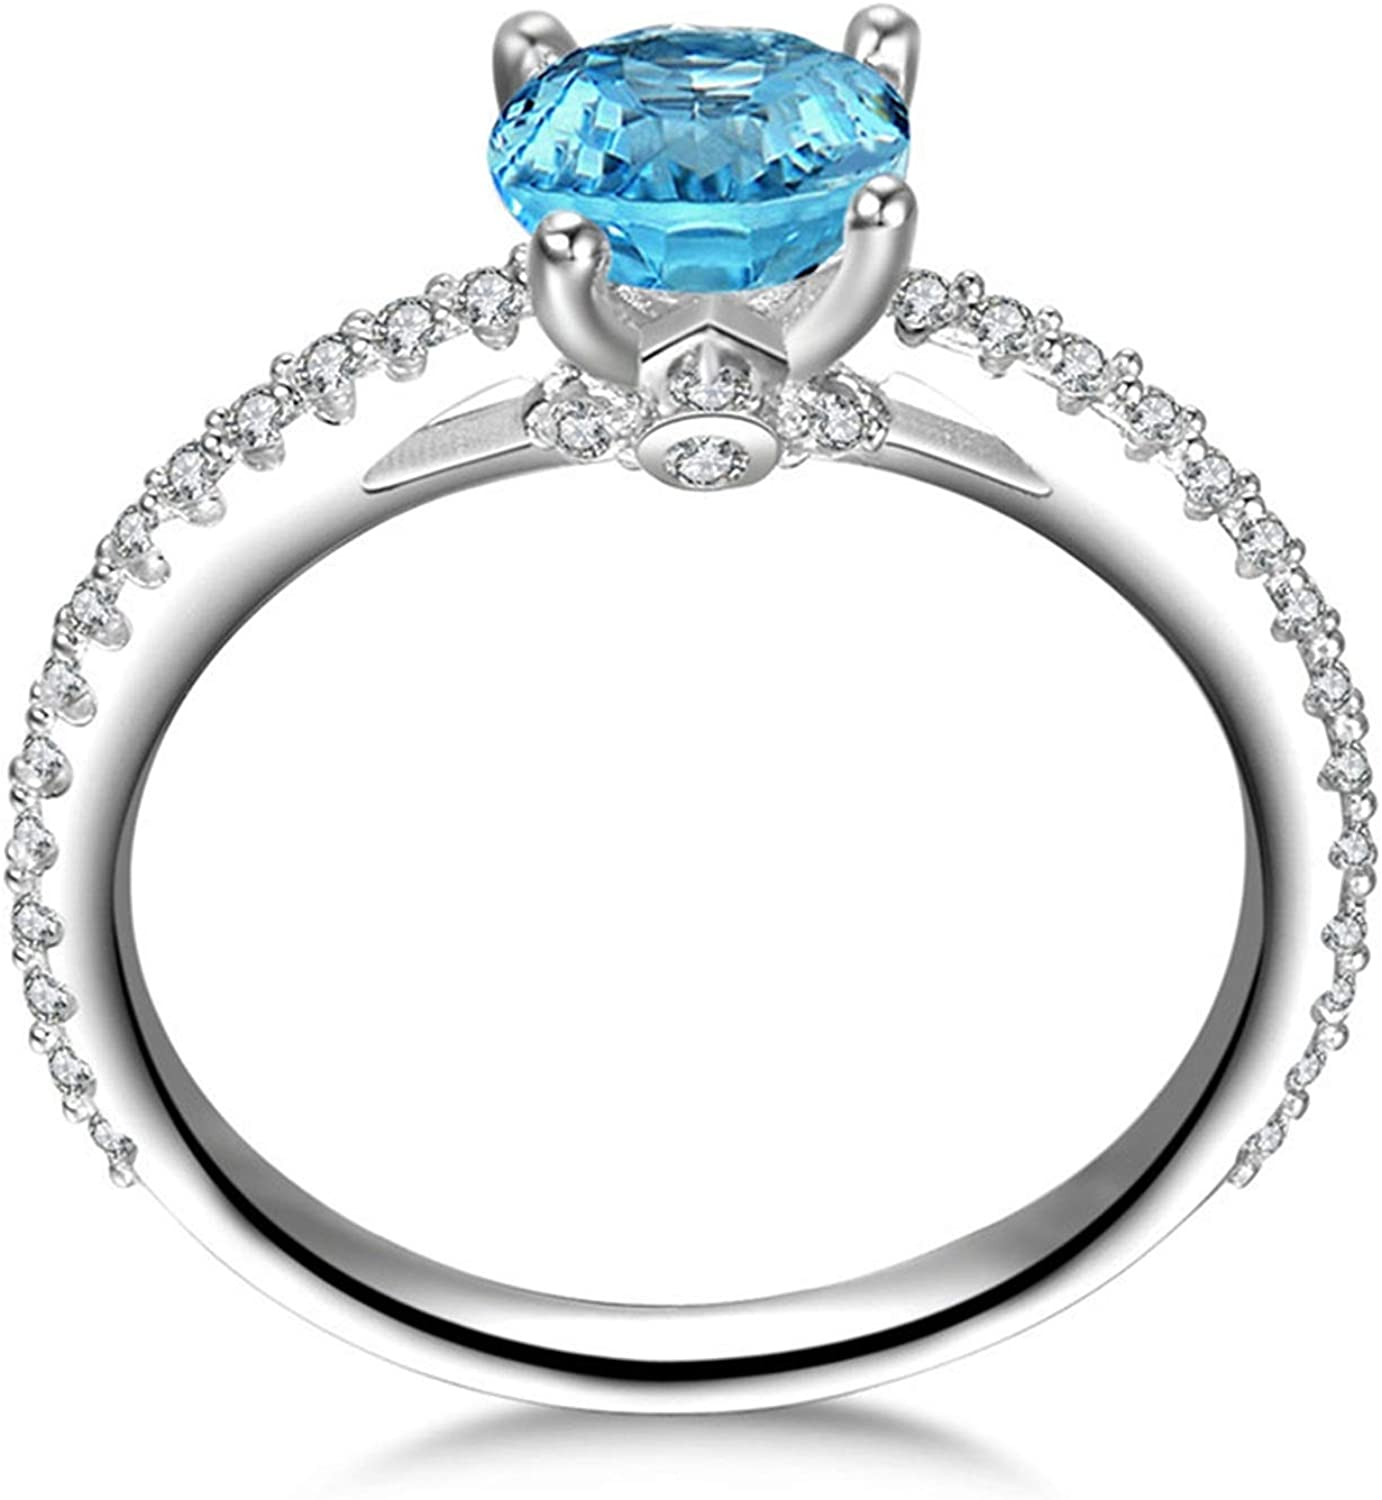 AMDXD Jewellery 925 Sterling Silver Anniversary Rings Womens Round Cut Topaz Round Ring